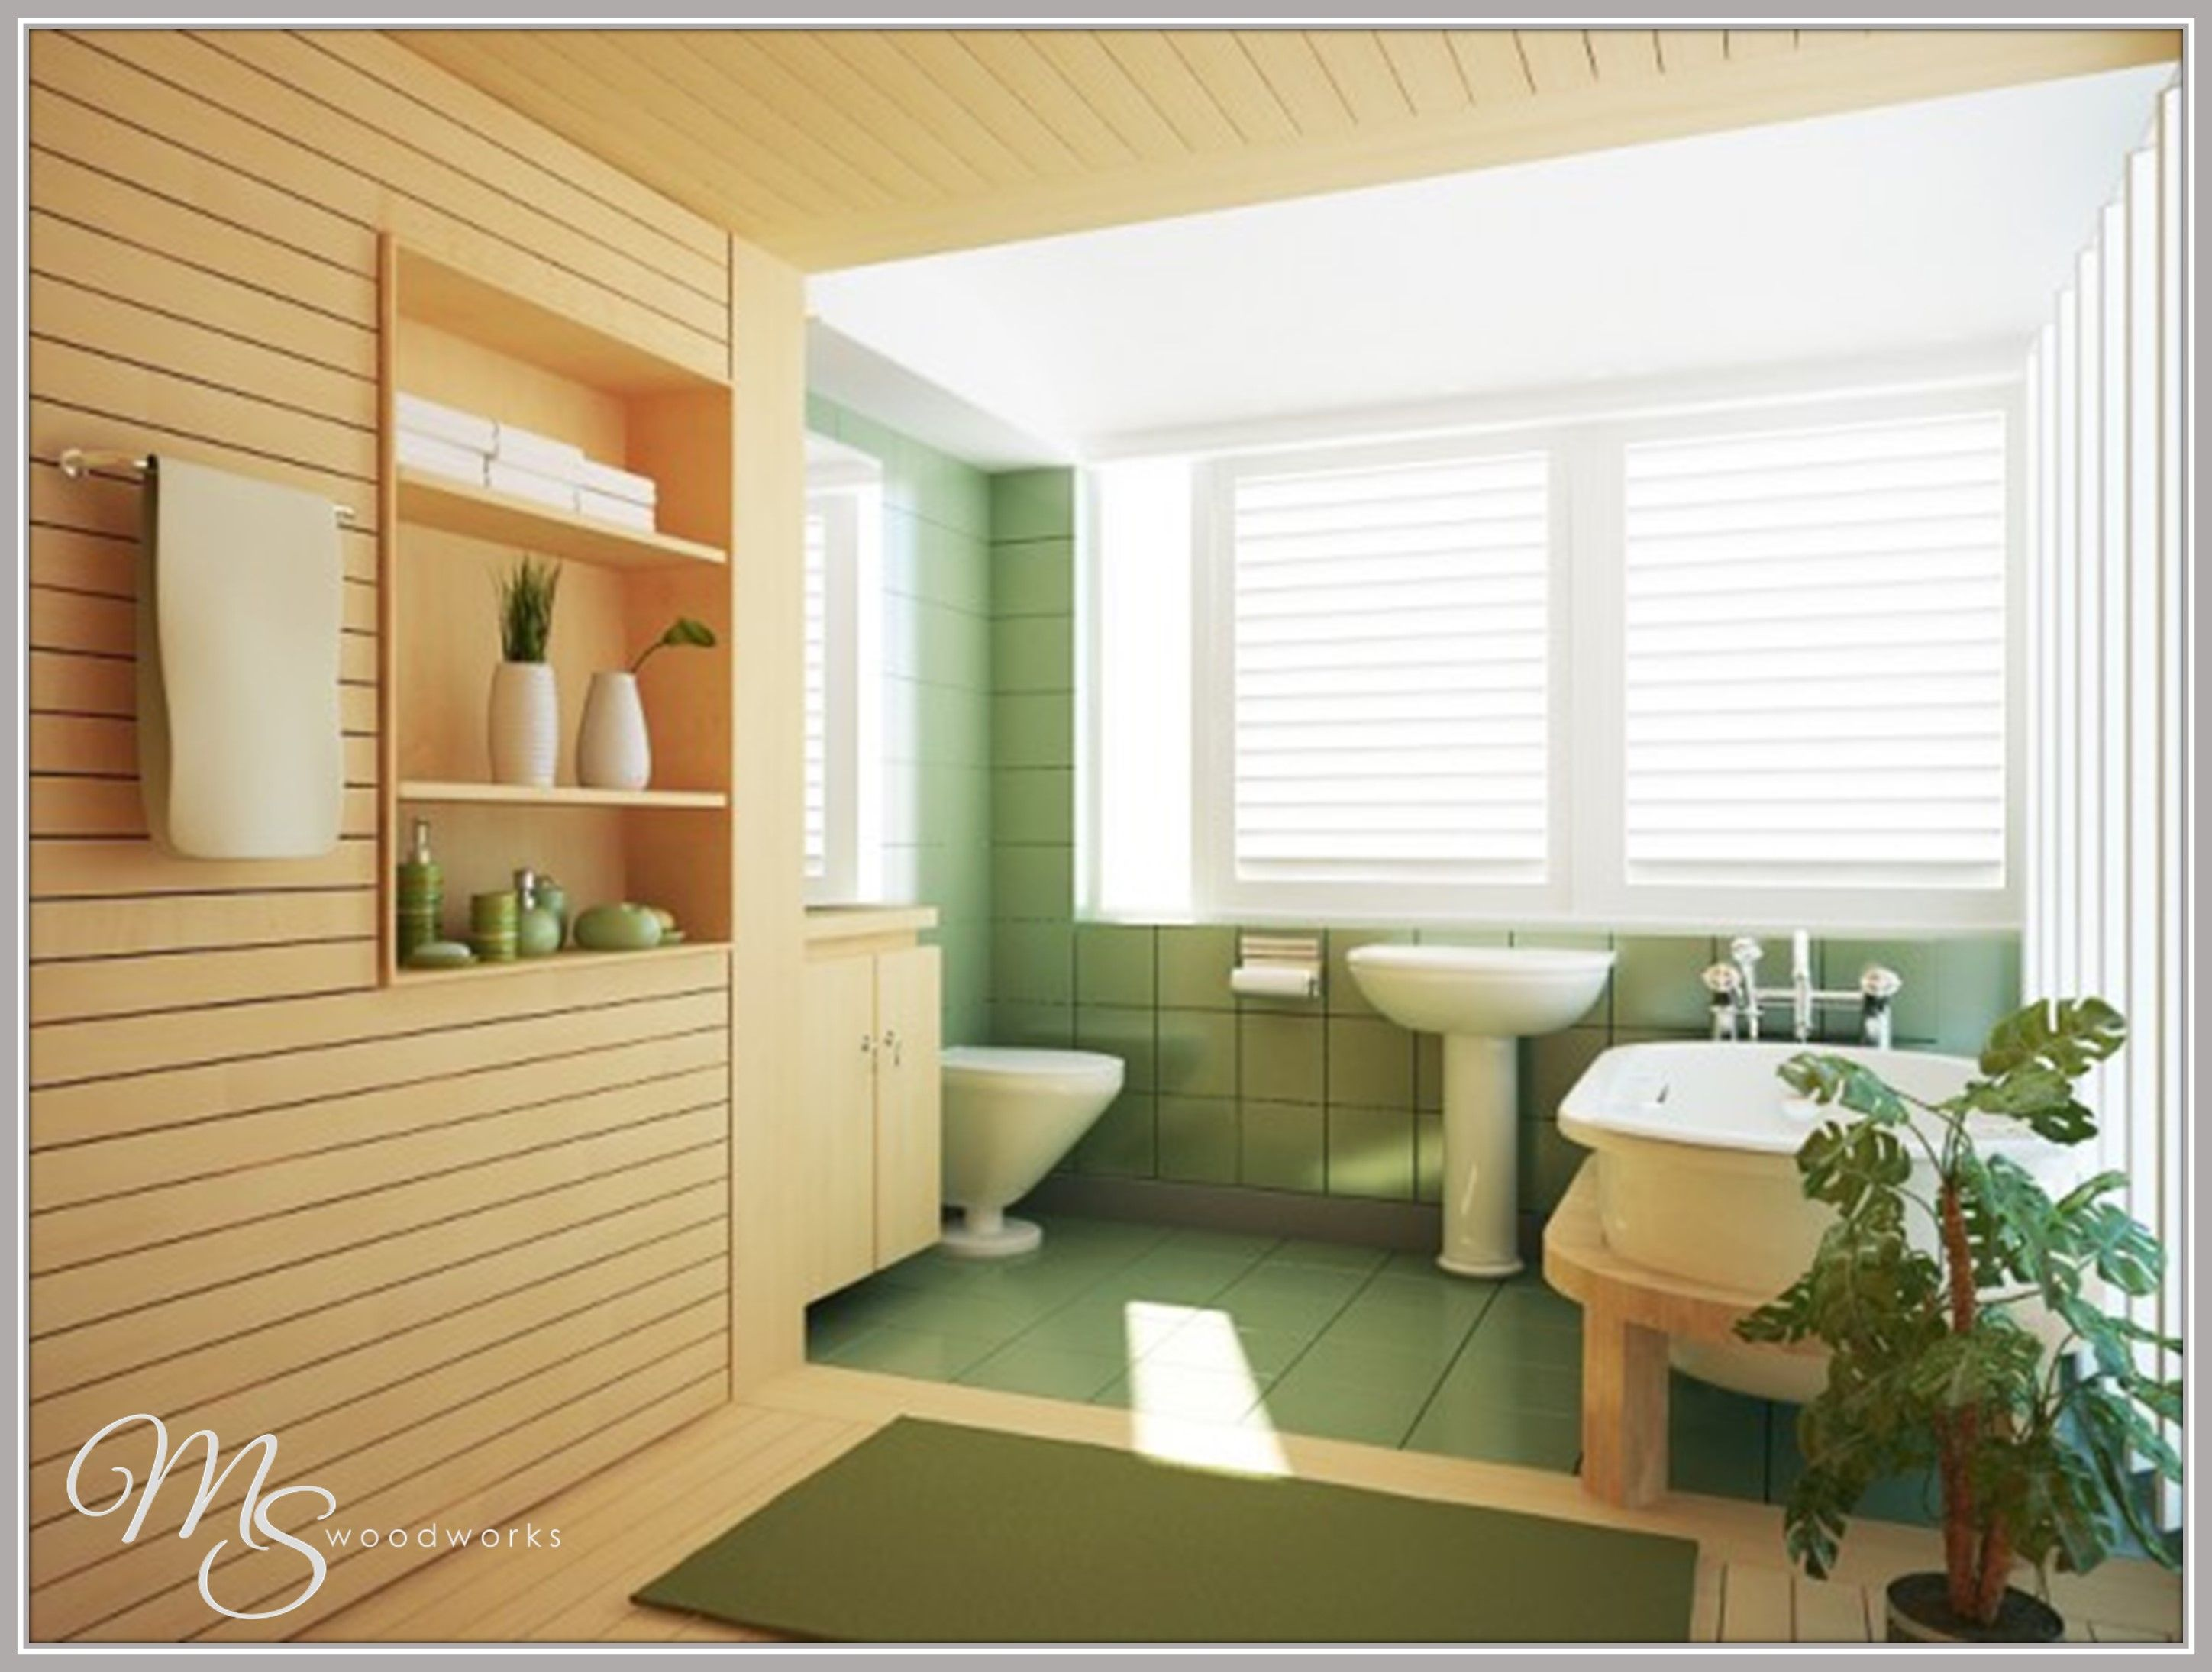 Remodeled bathroom with spa-like accents and wood accent wall. #yesplease